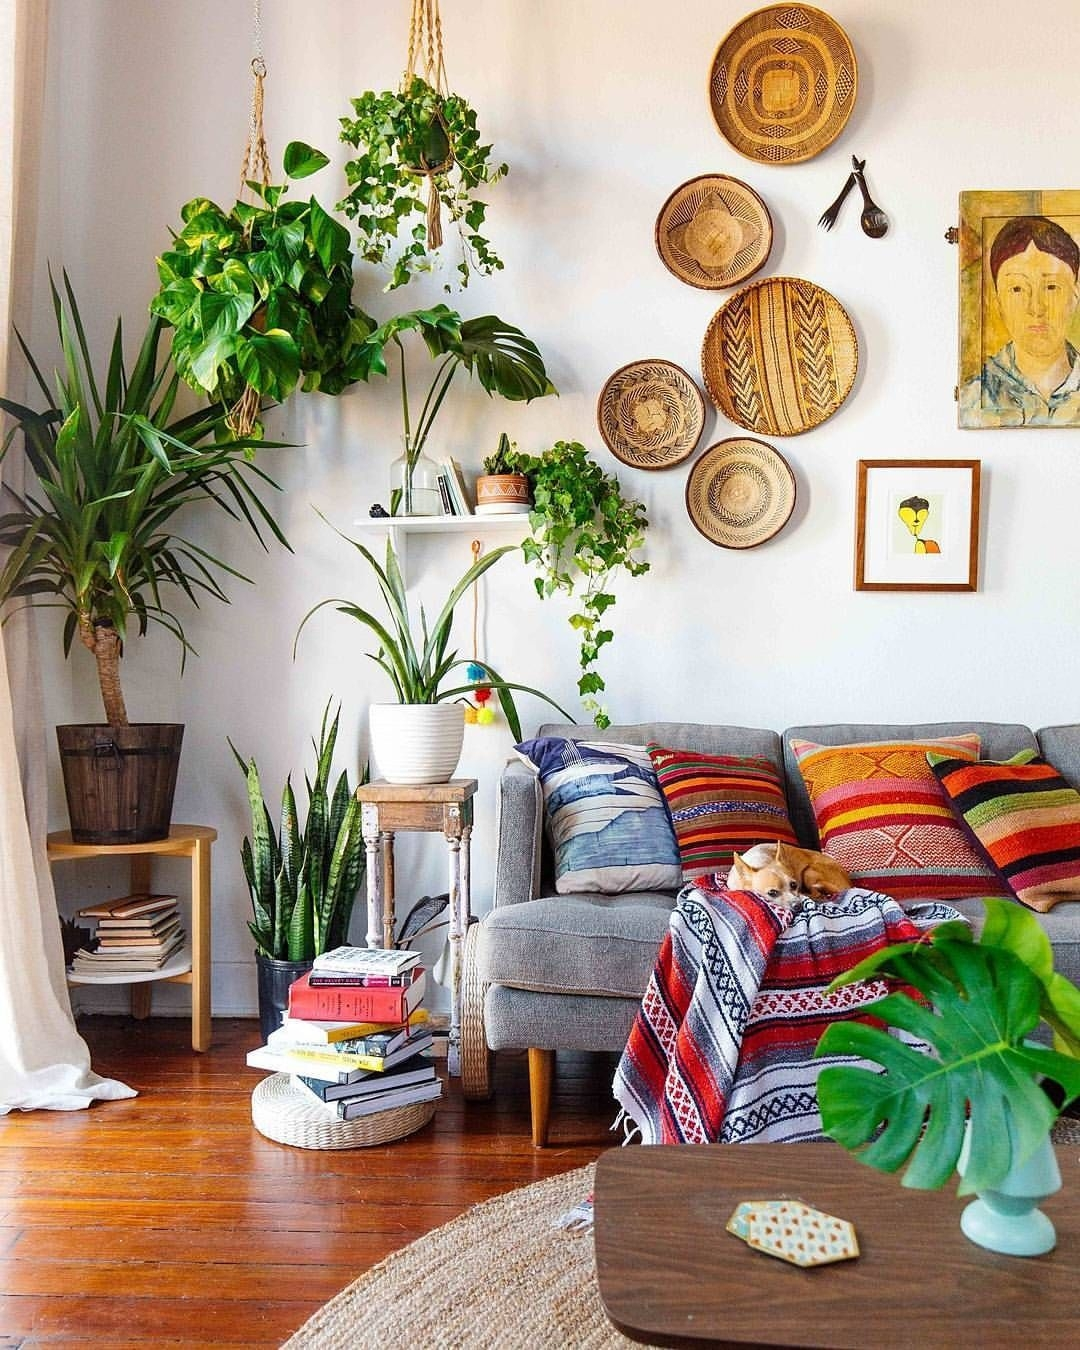 Amazing Boho Living Space With Global Textiles Lots Of Greenery And Woven Baskets As Wall Art